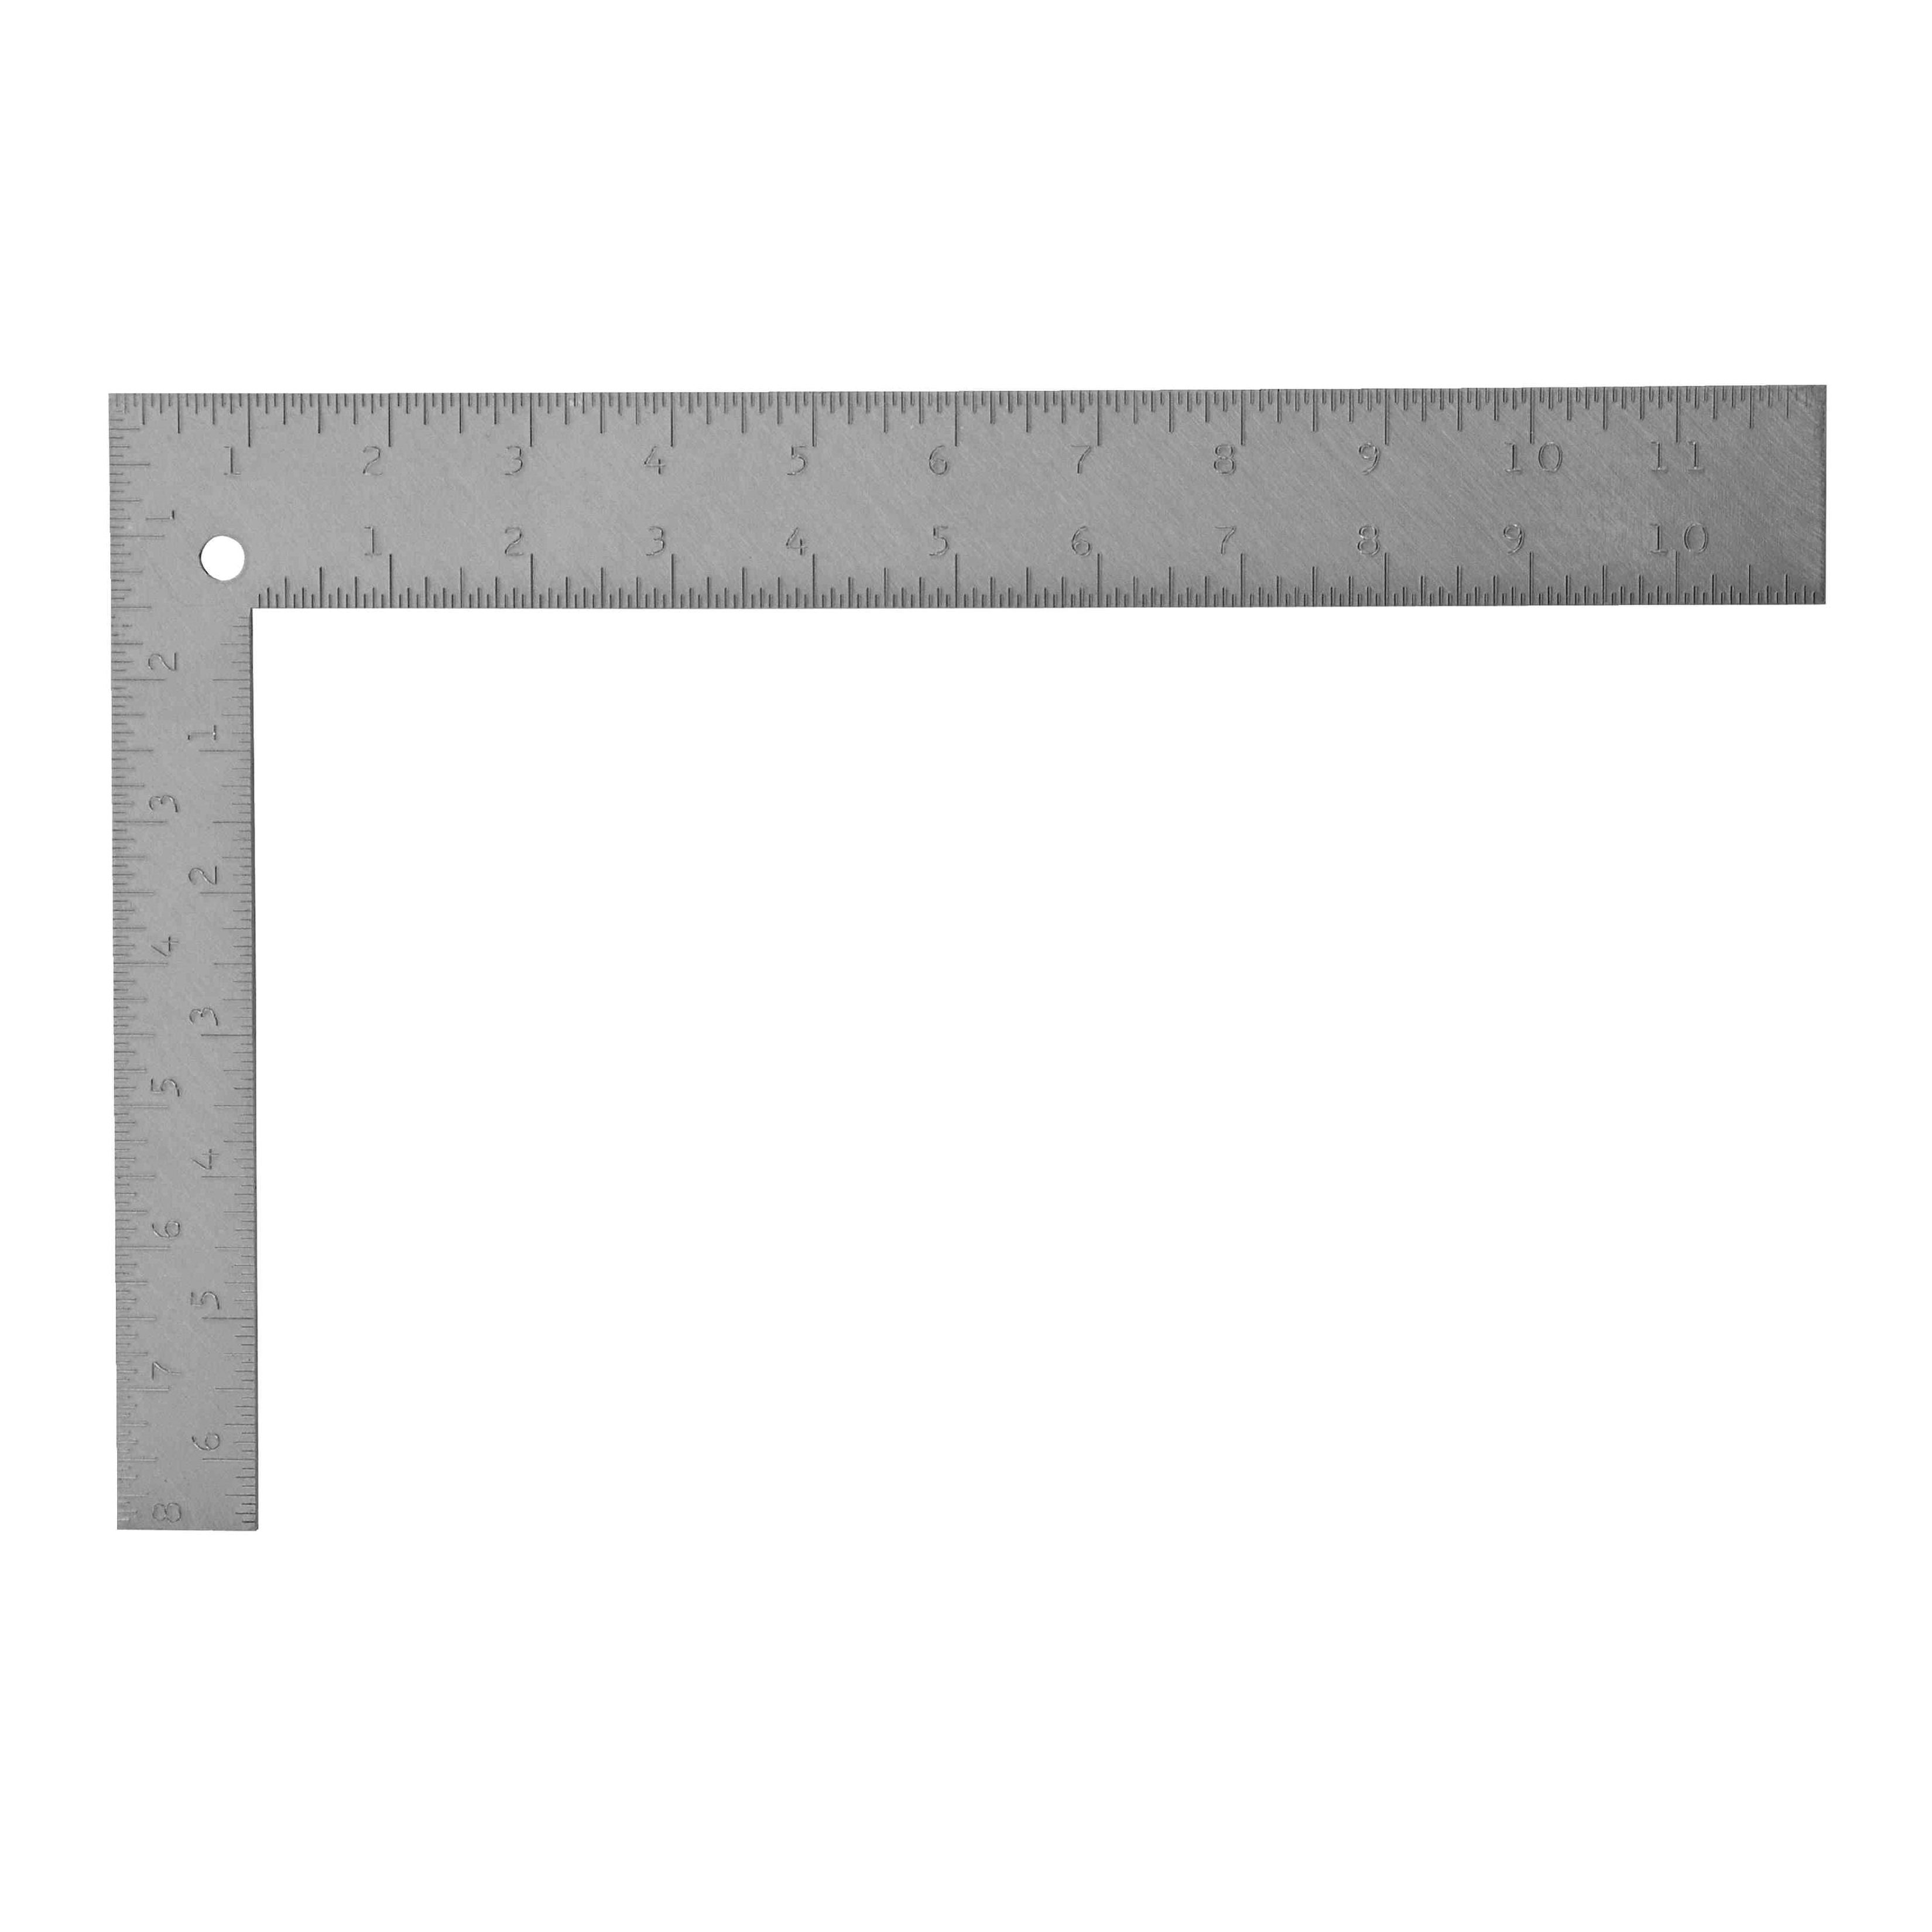 Stanley® 45-912 Carpenter's Square, 12 x 1-1/2 in, 1/16 in Face/Back Graduation, 8 x 1 in Tongue, Steel